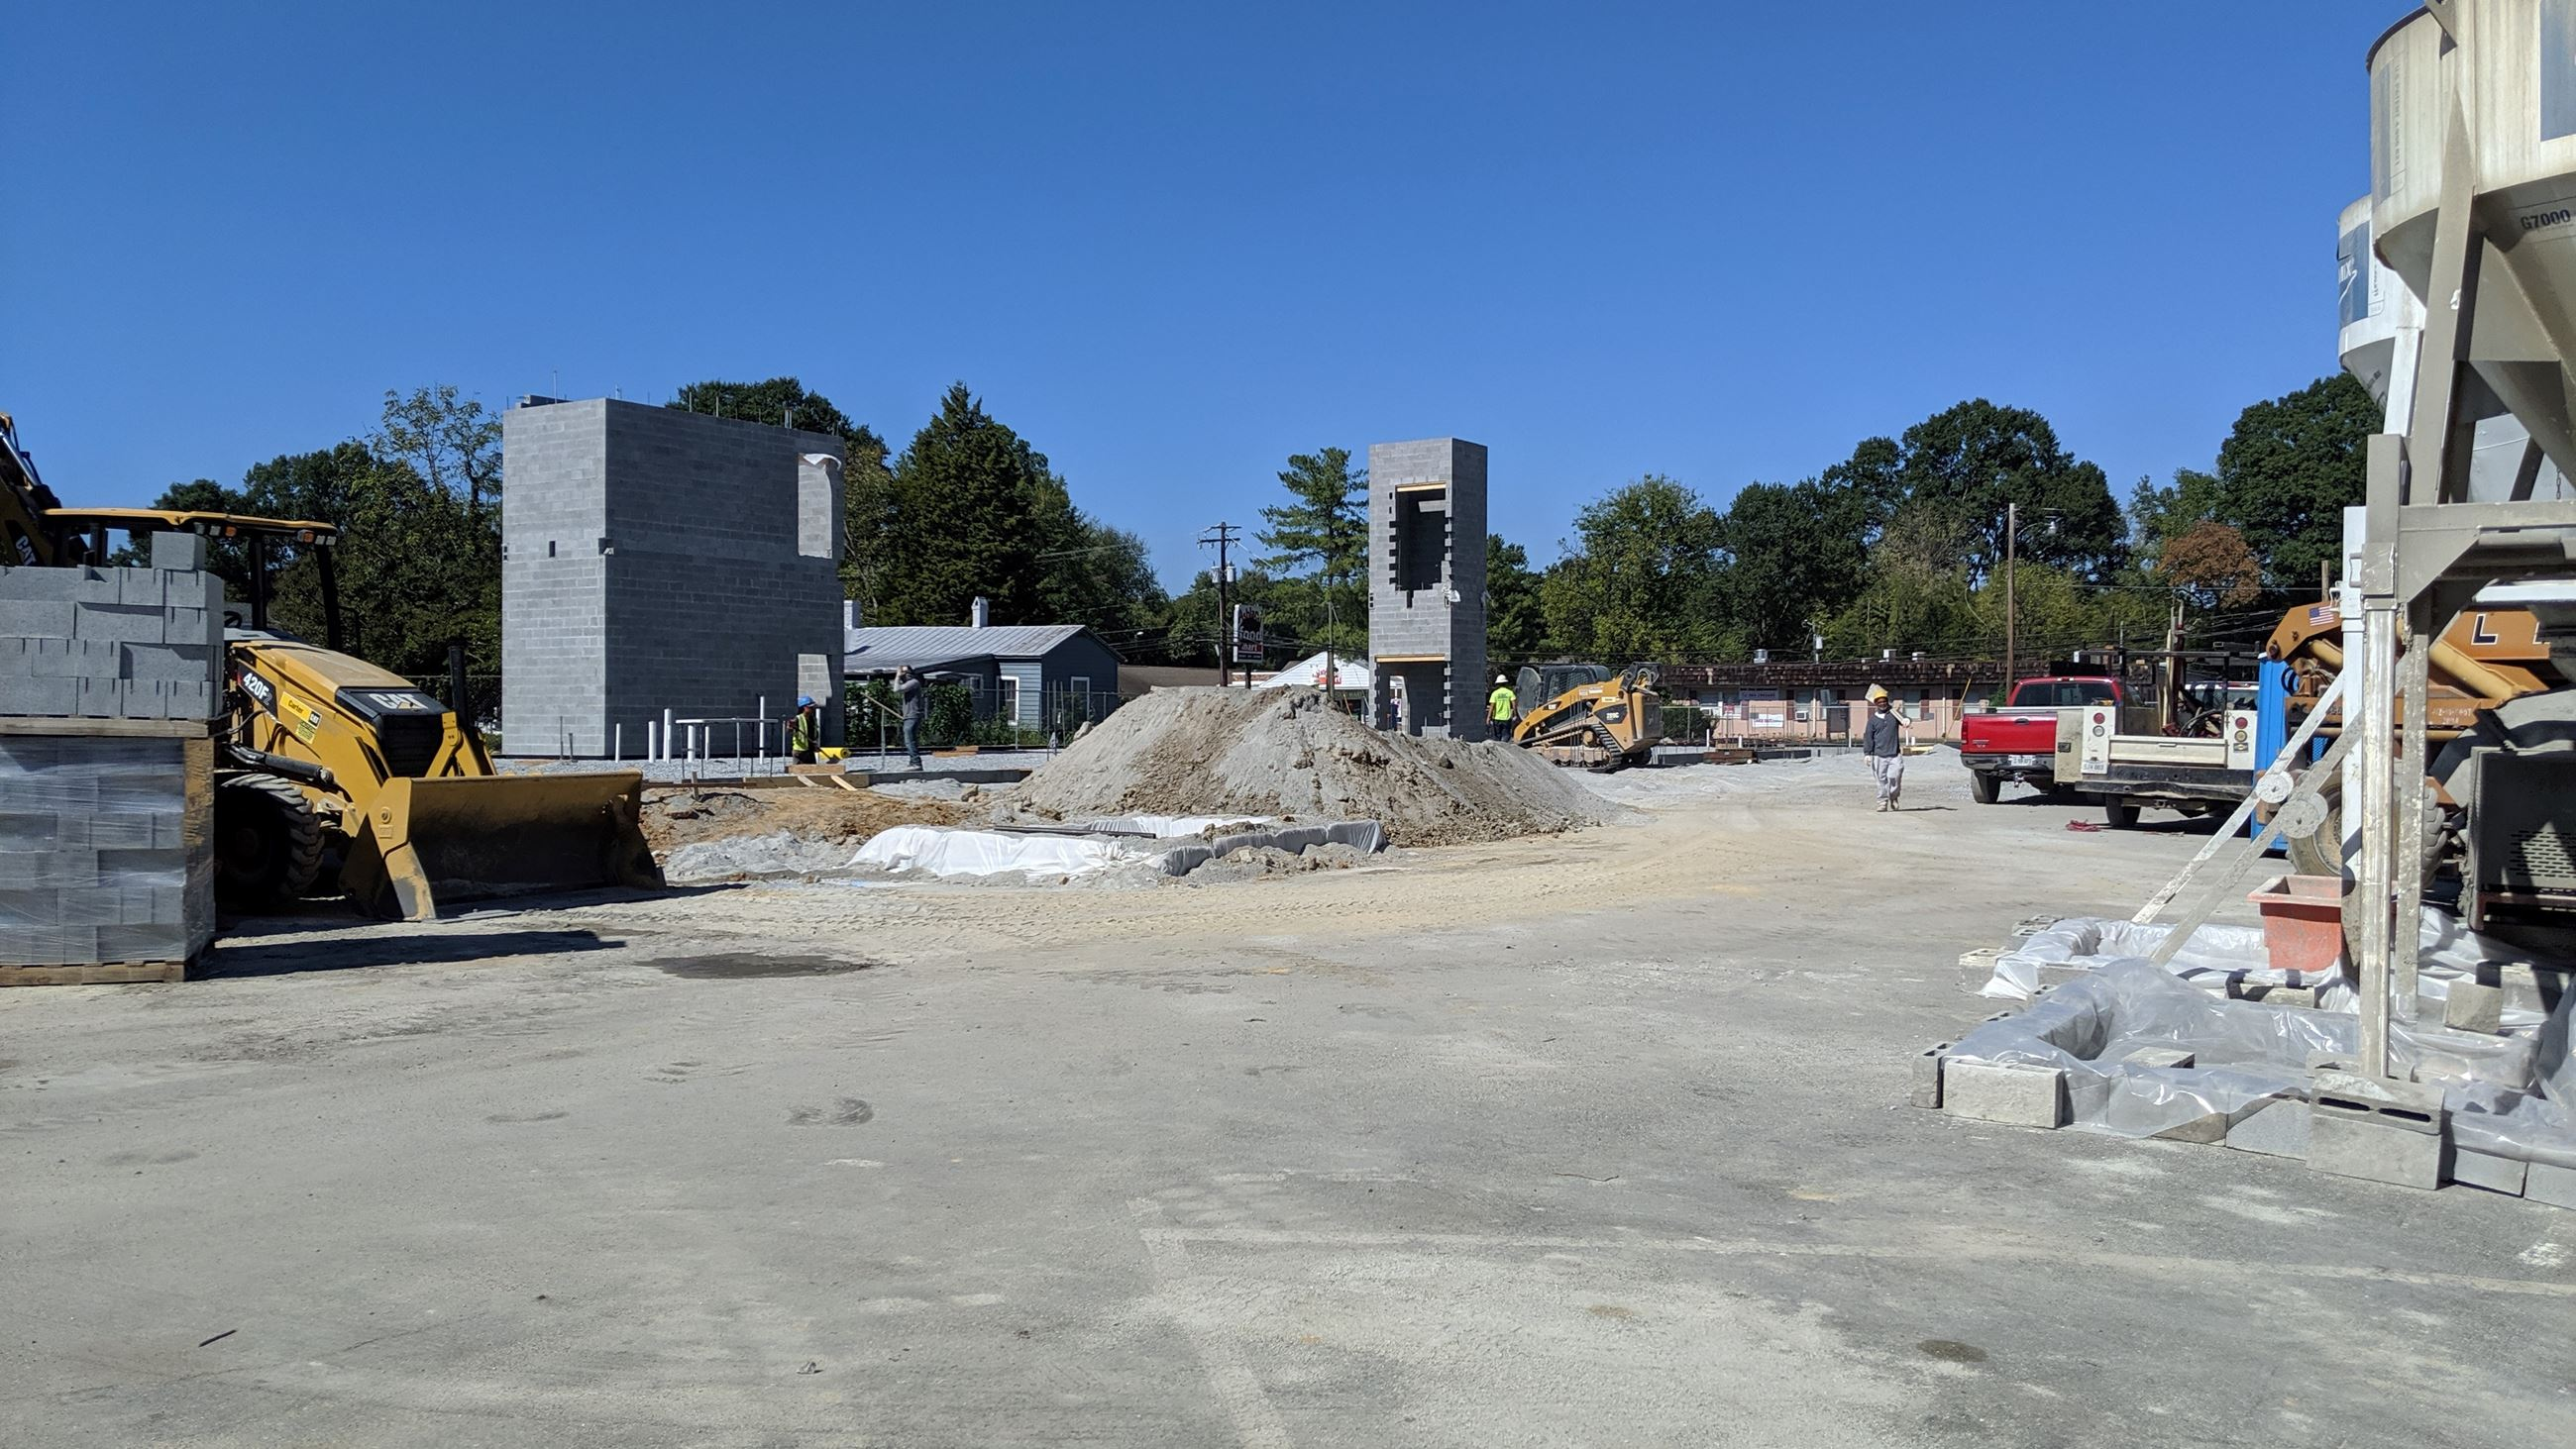 new town hall construction site